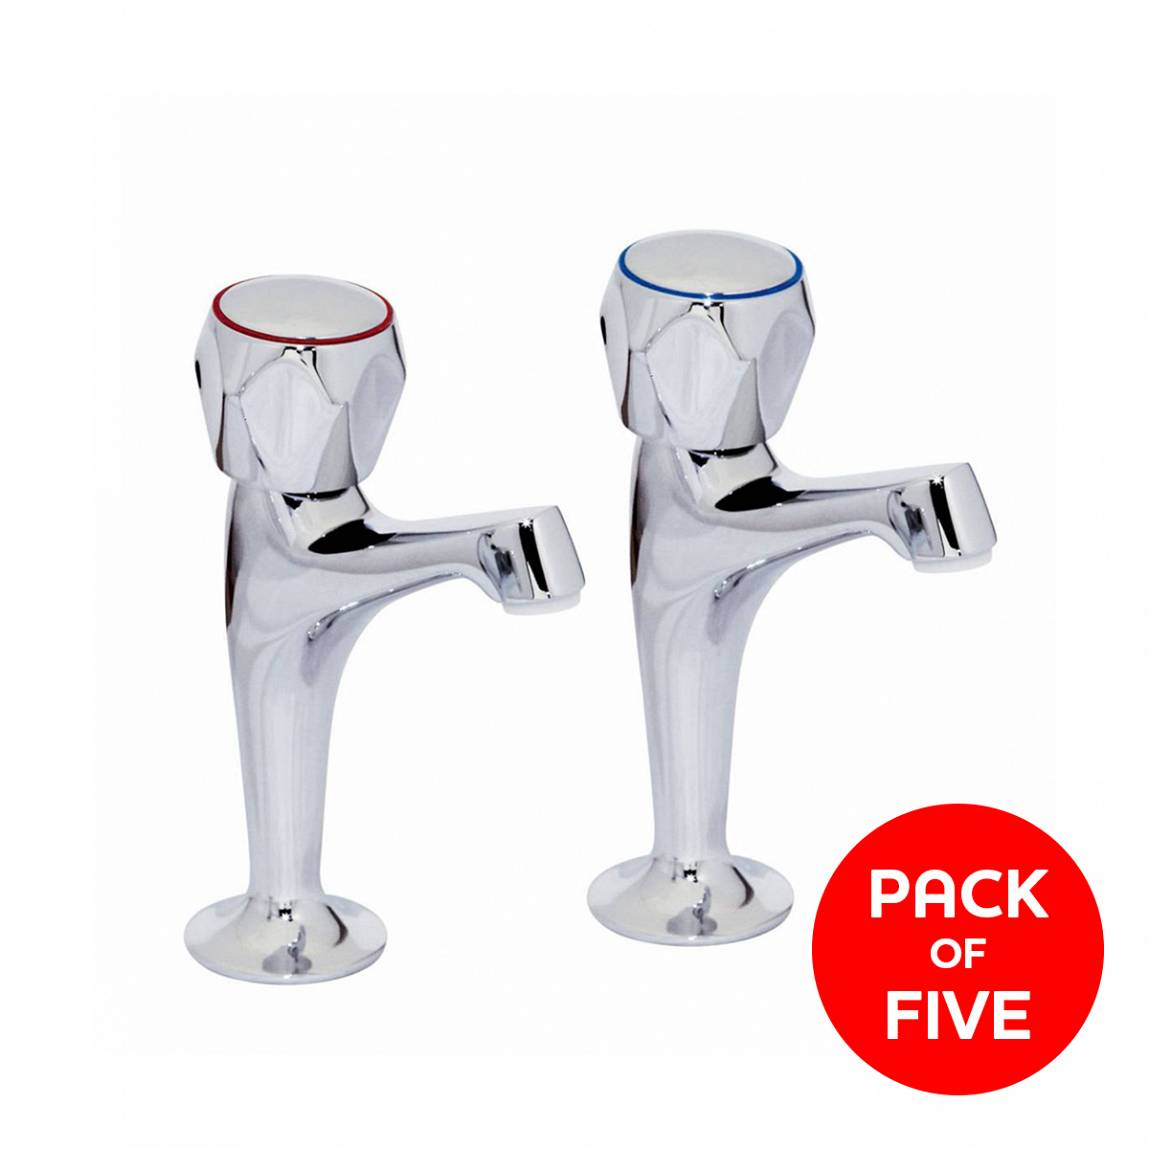 """Image of Rydal 1/2"""" Kitchen Taps with Hexagon Handle (Pack of Five)"""